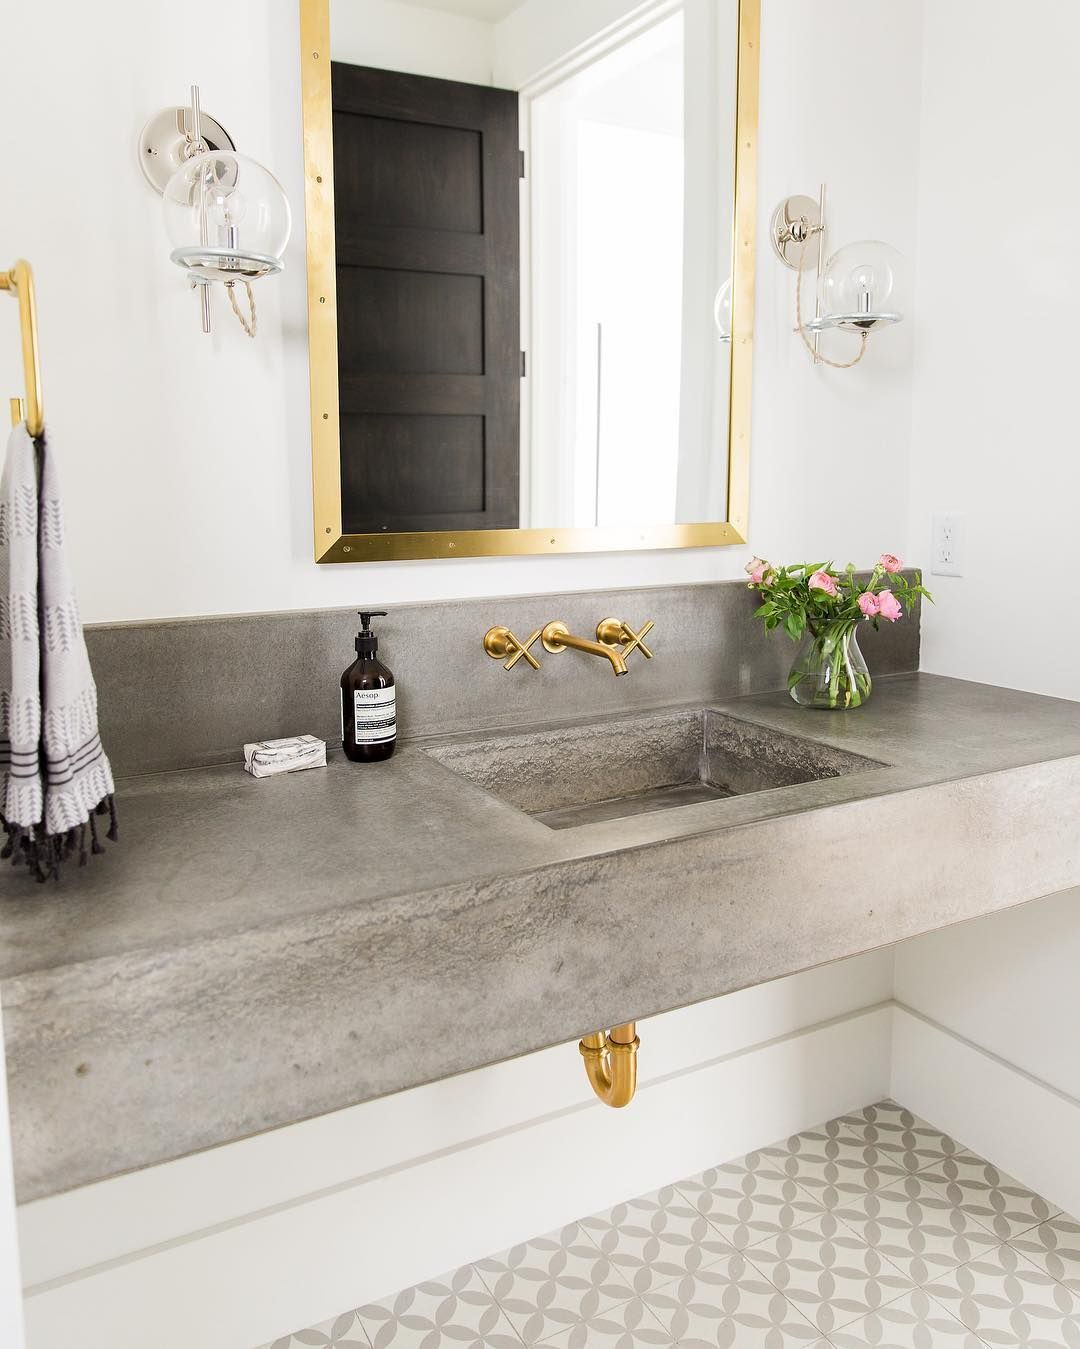 Floating Concrete Sink And Brass Fixtures Studio McGee